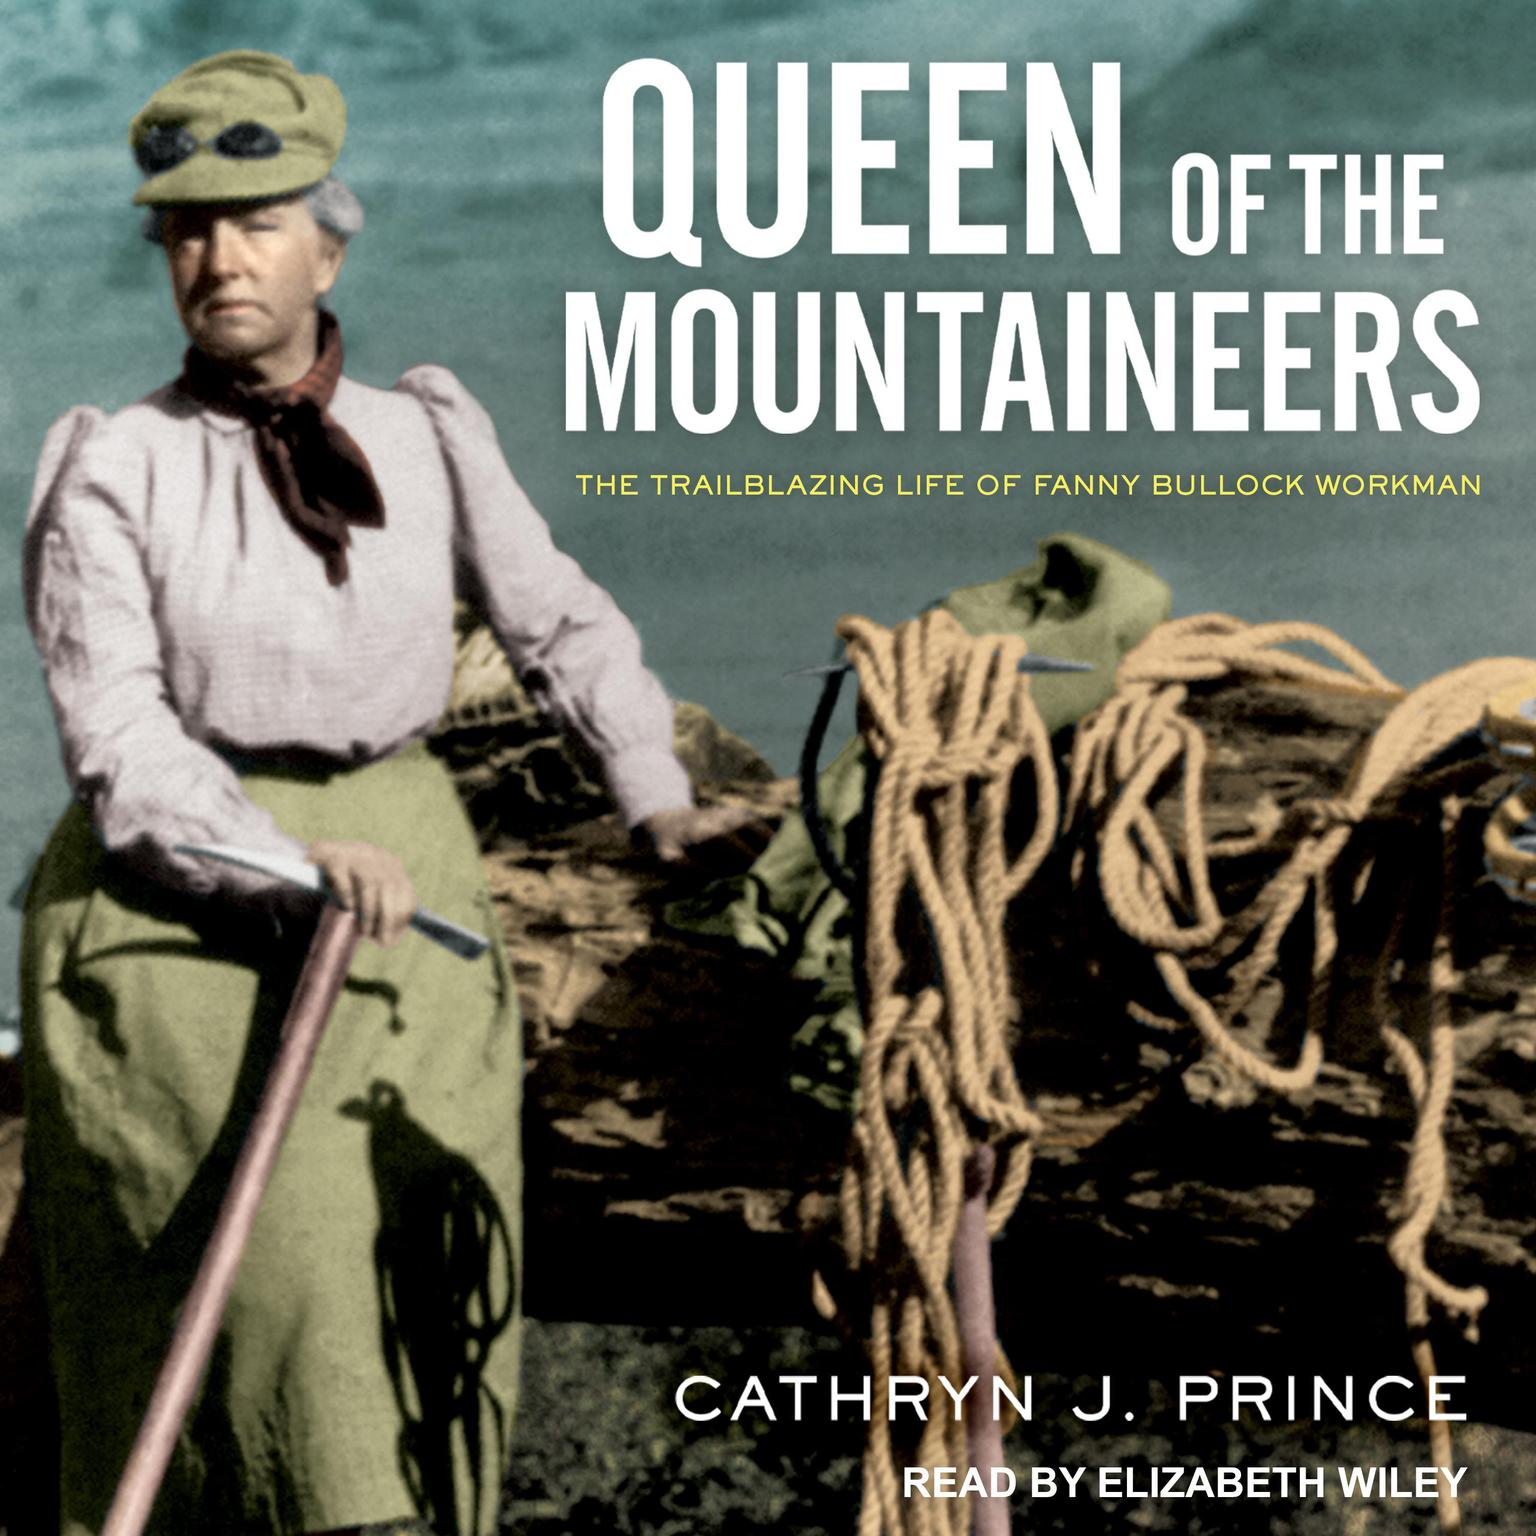 Printable Queen of the Mountaineers: The Trailblazing Life of Fanny Bullock Workman Audiobook Cover Art